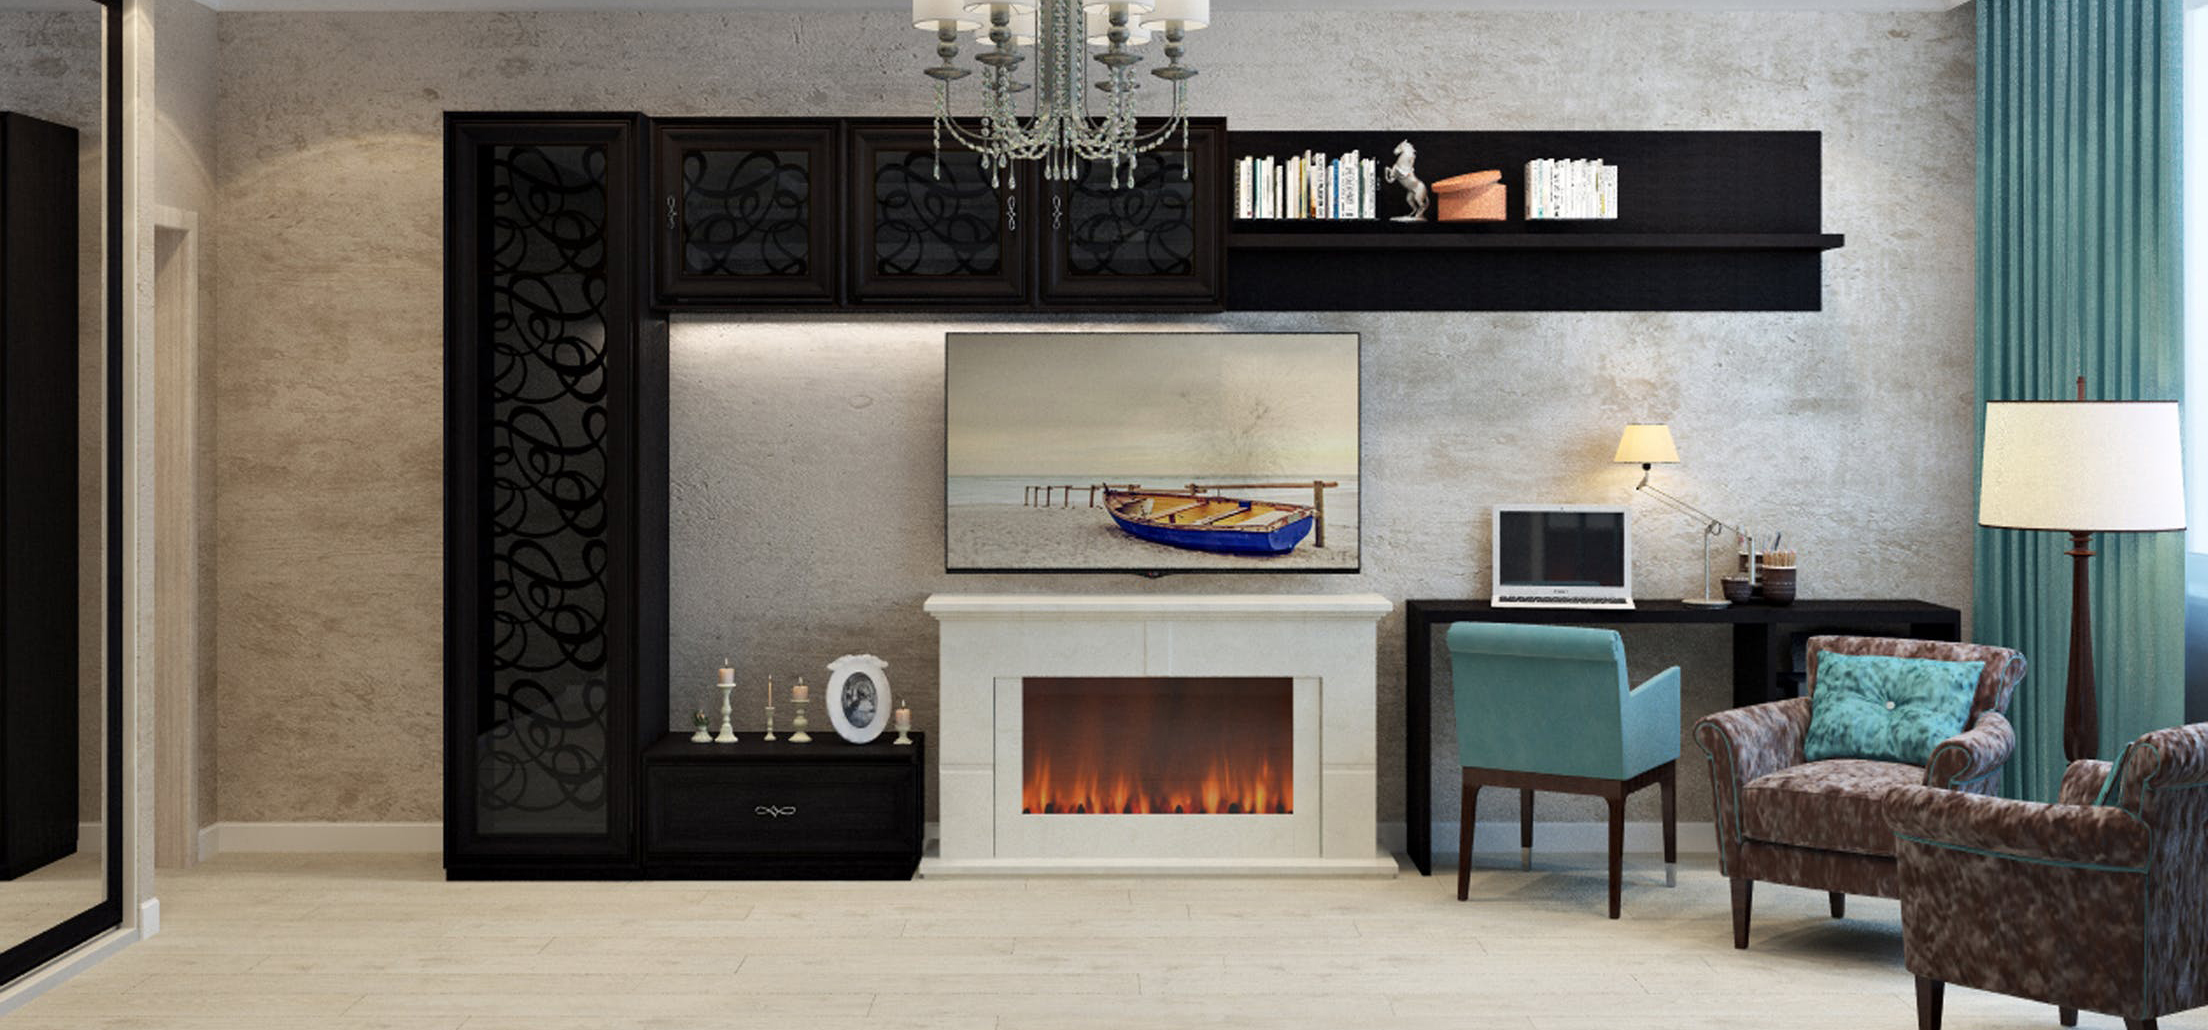 choosing-a-gas-fireplace-for-your-home-5.jpeg